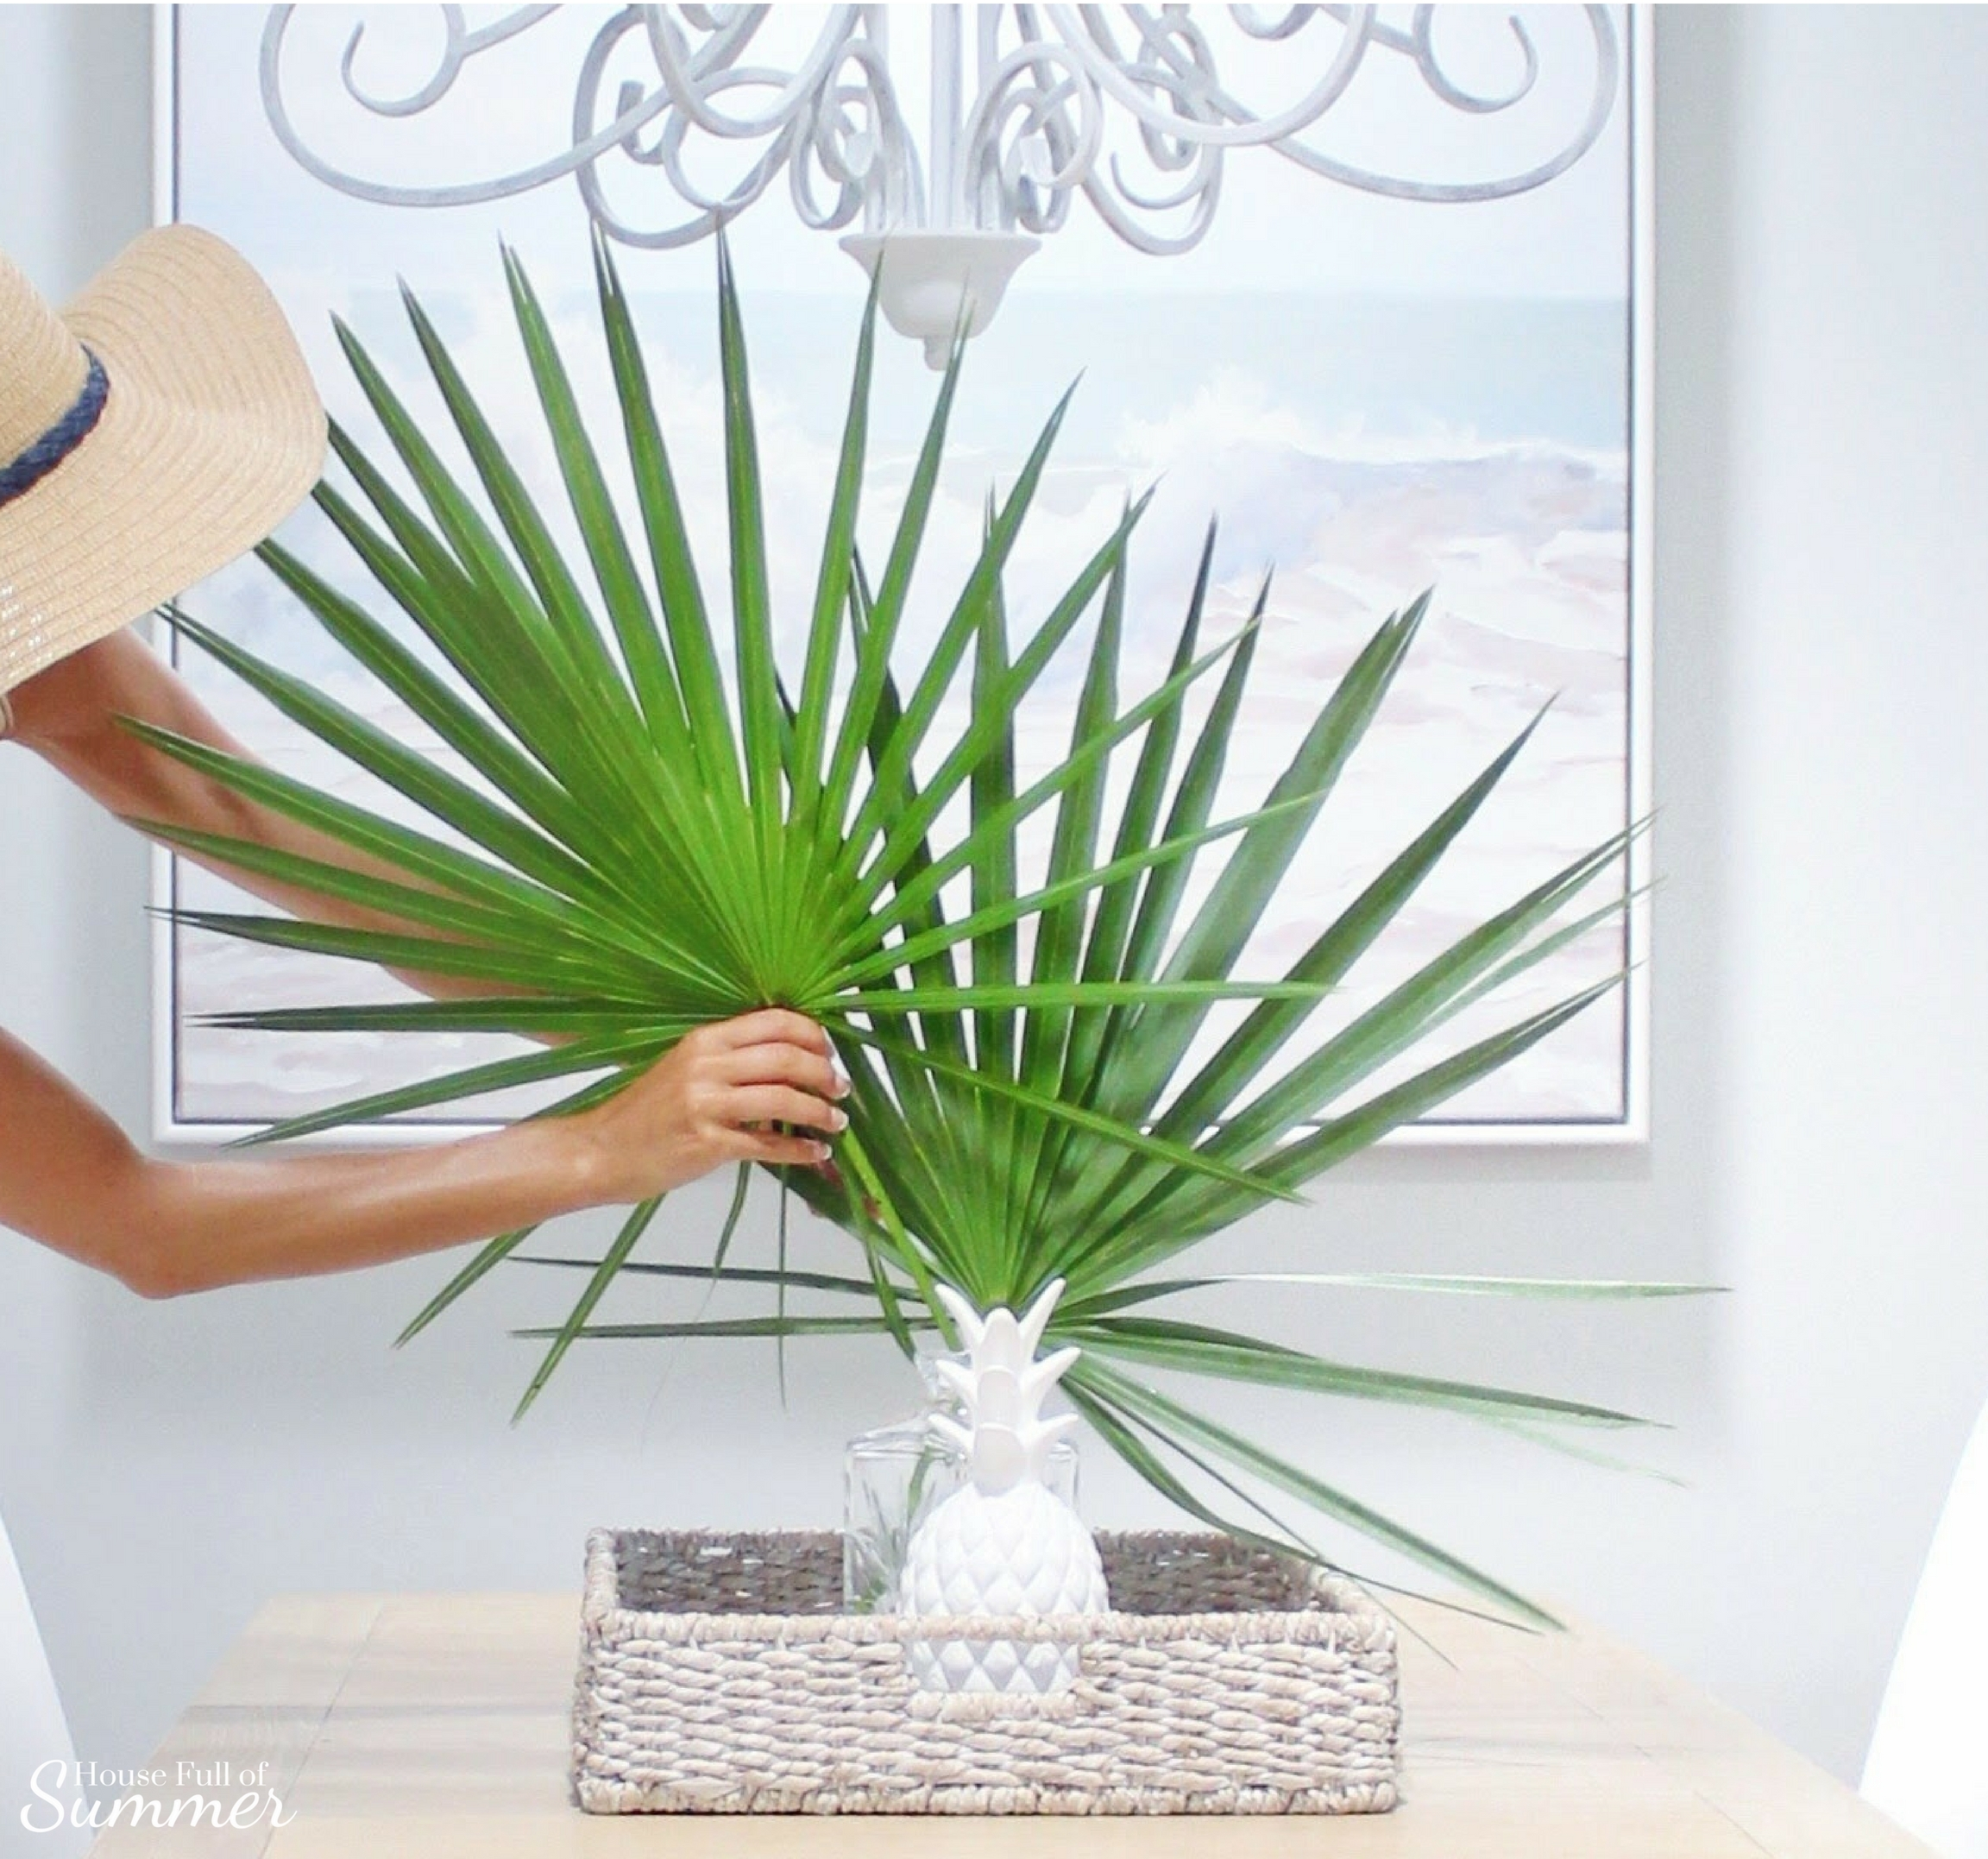 Add New Life to Your Home With This New Year's Resolution | House Full of Summer blog adding greenery to your home, decorating with plants, fronds, trimmings, winter decor, home decor, coastal dining room decor, beach art, ocean waves, saw palmetto fronds, white pineapple, dining centerpiece, tropical style